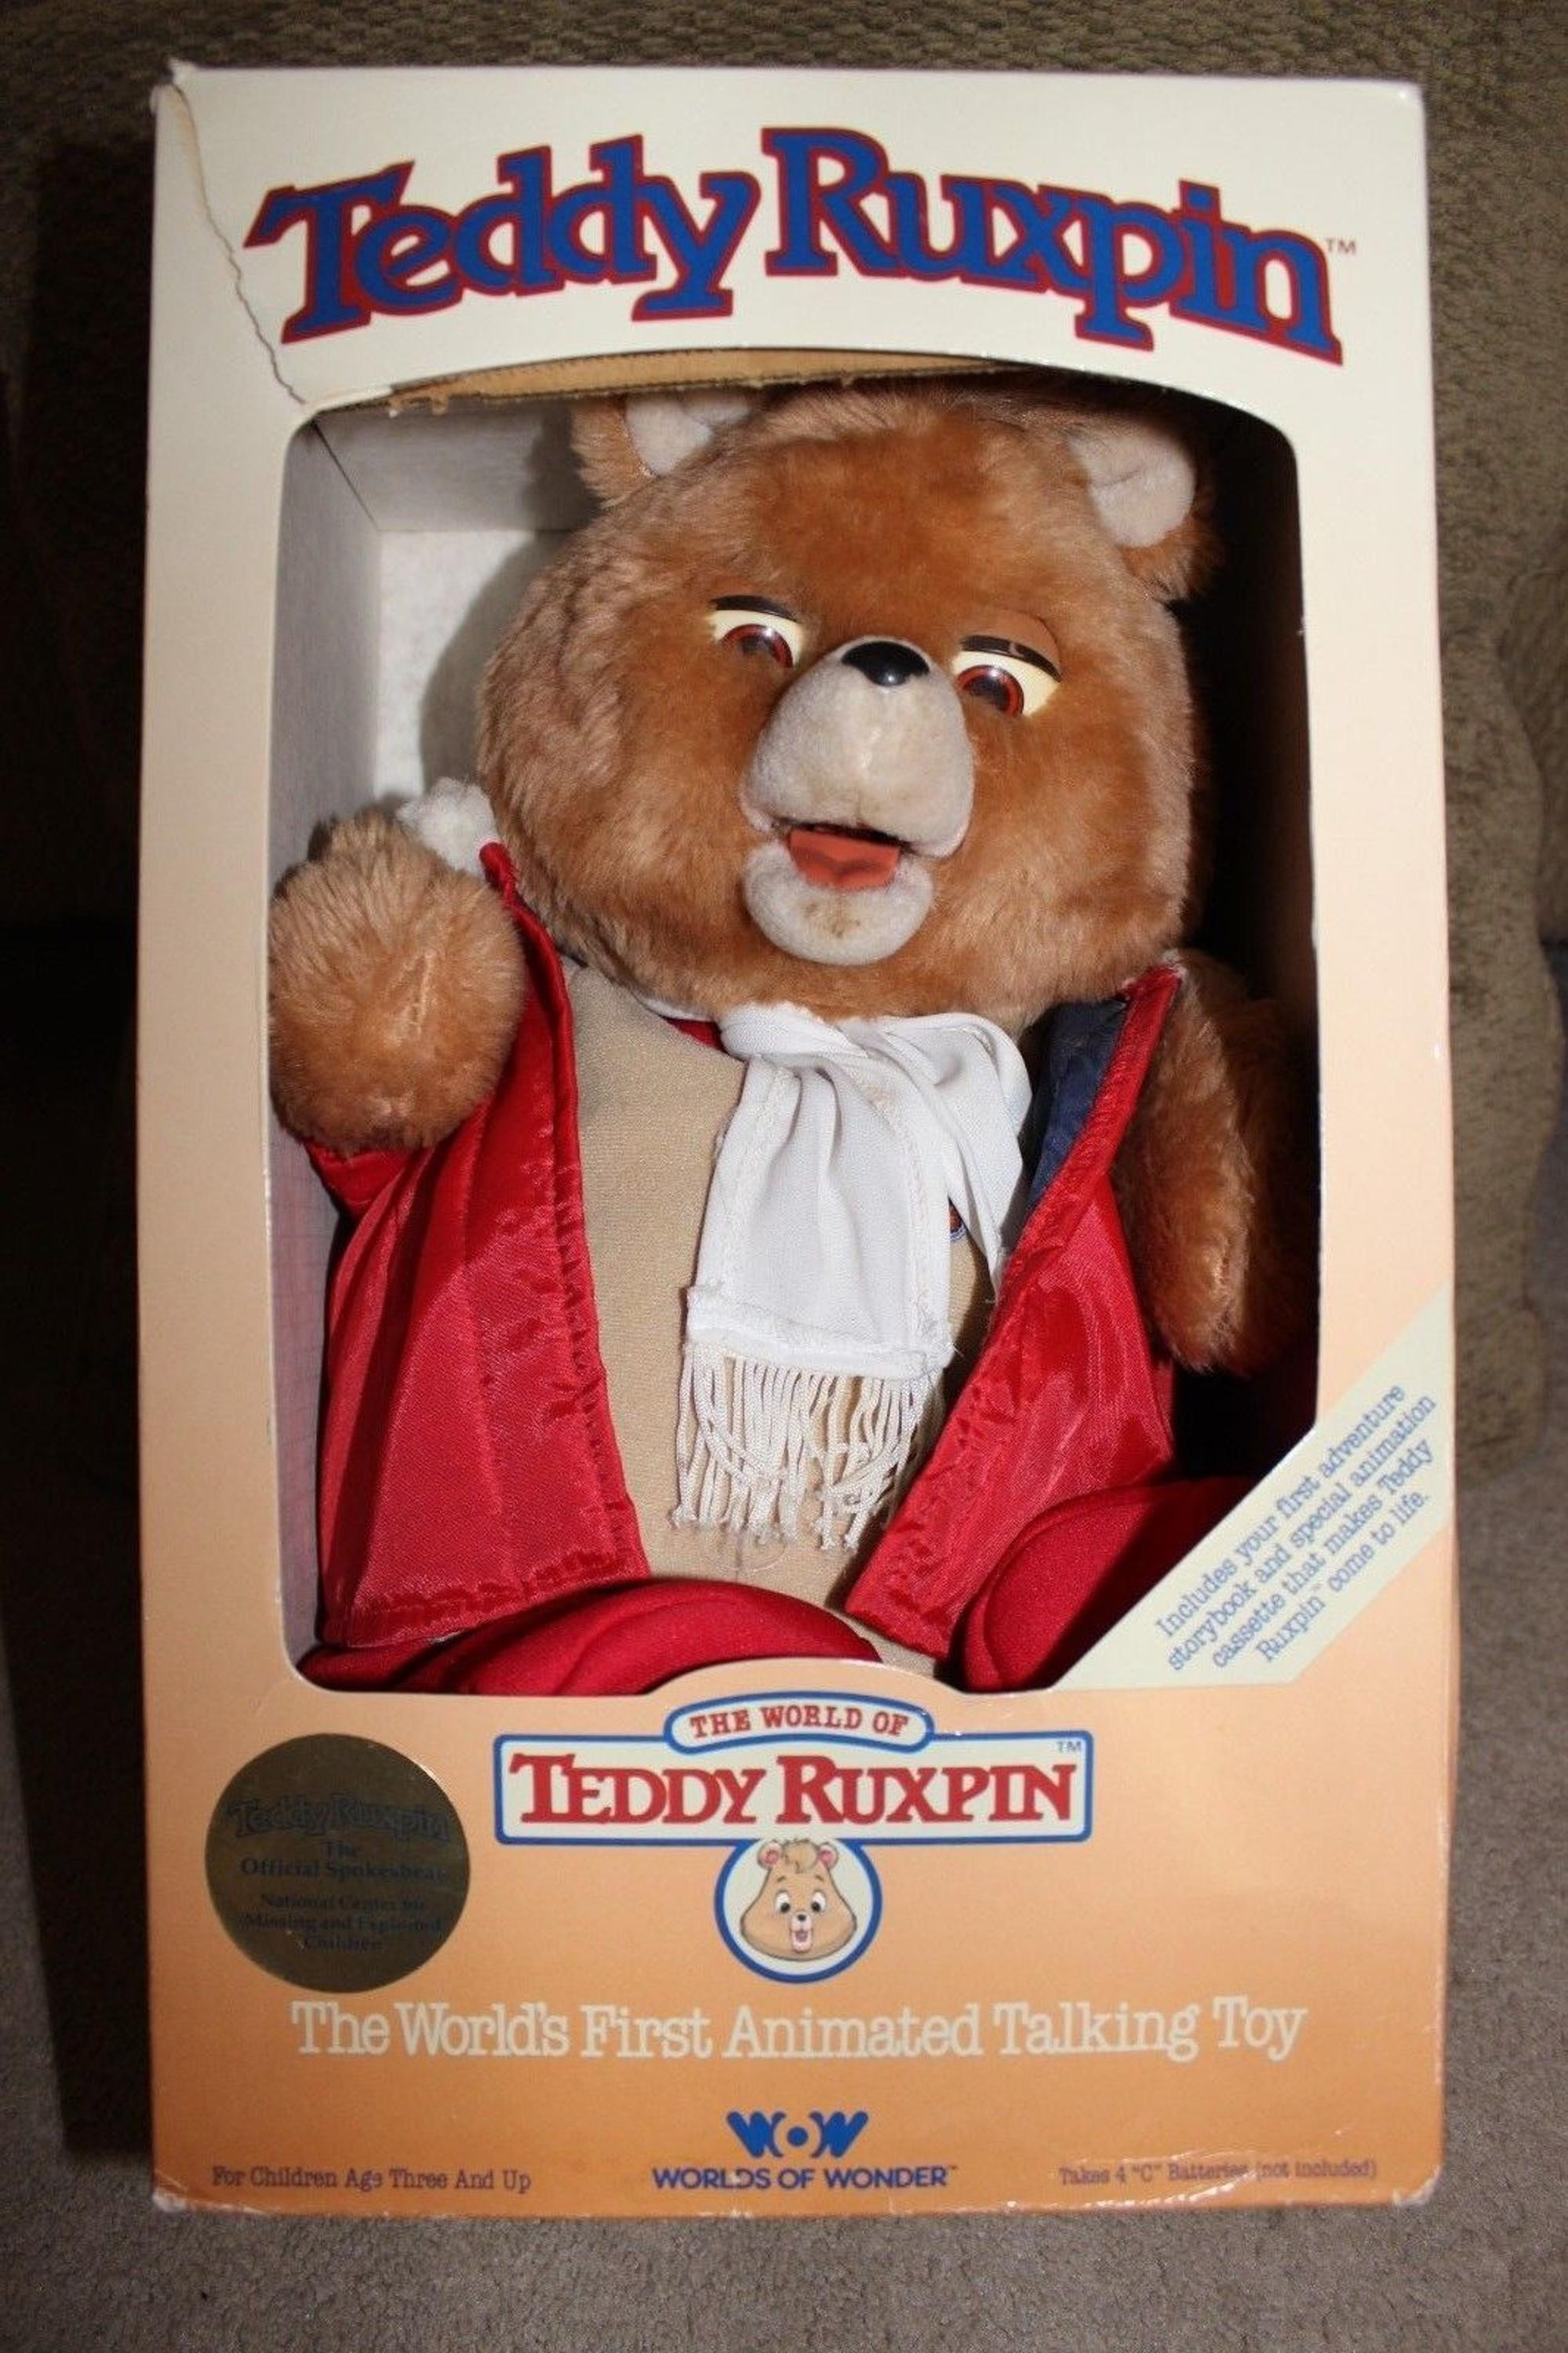 2017 Teddy Ruxpin - Official Return of the Storytime and Magical Bear